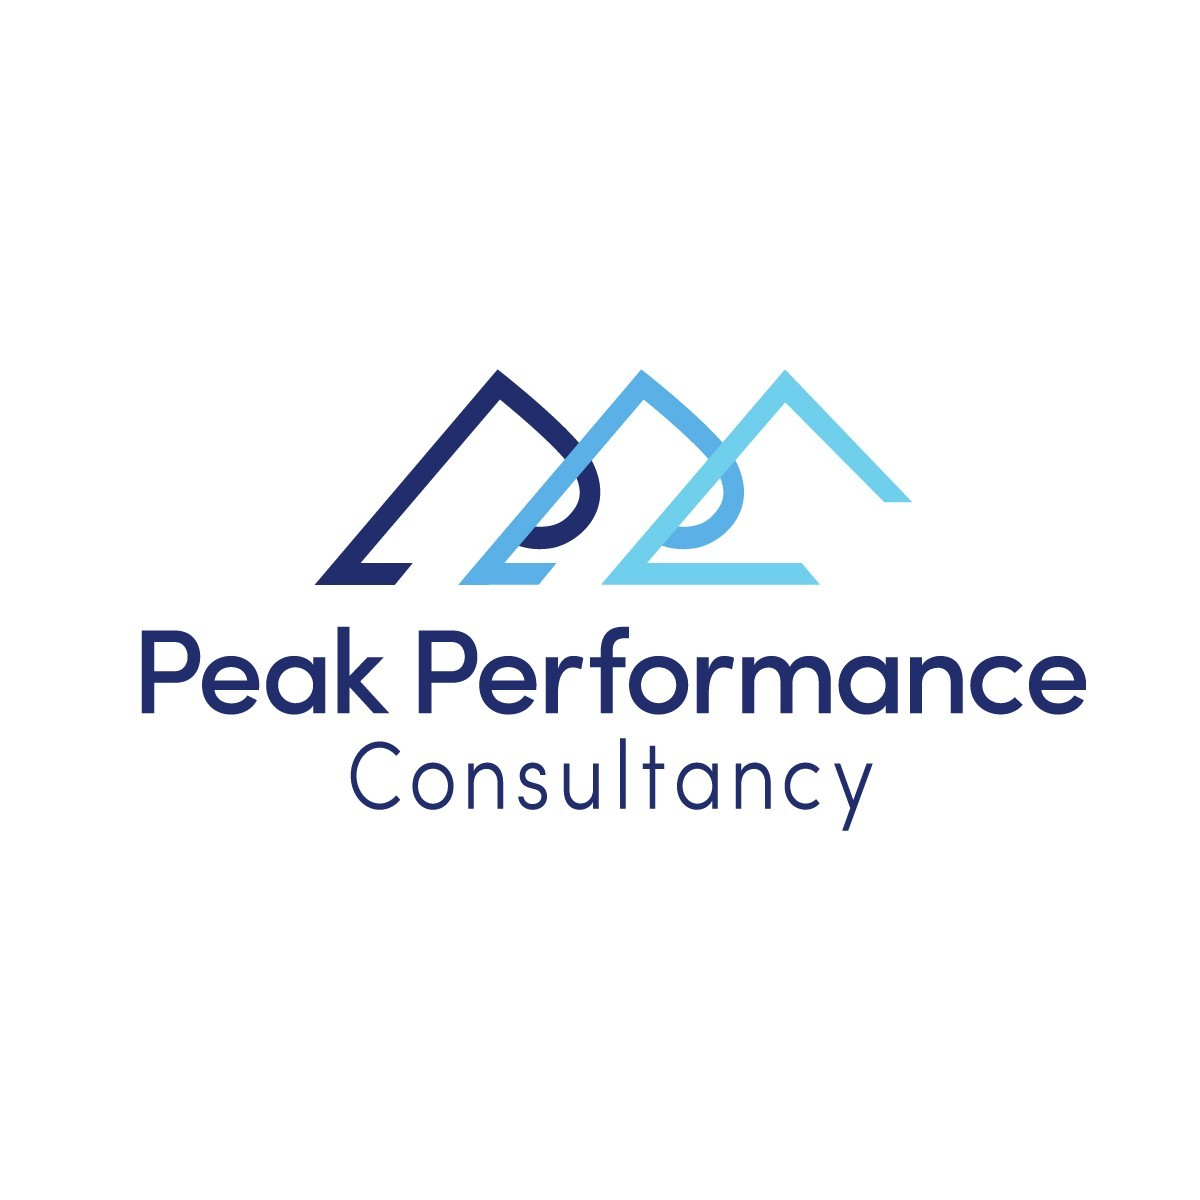 Peak Performance Consultancy